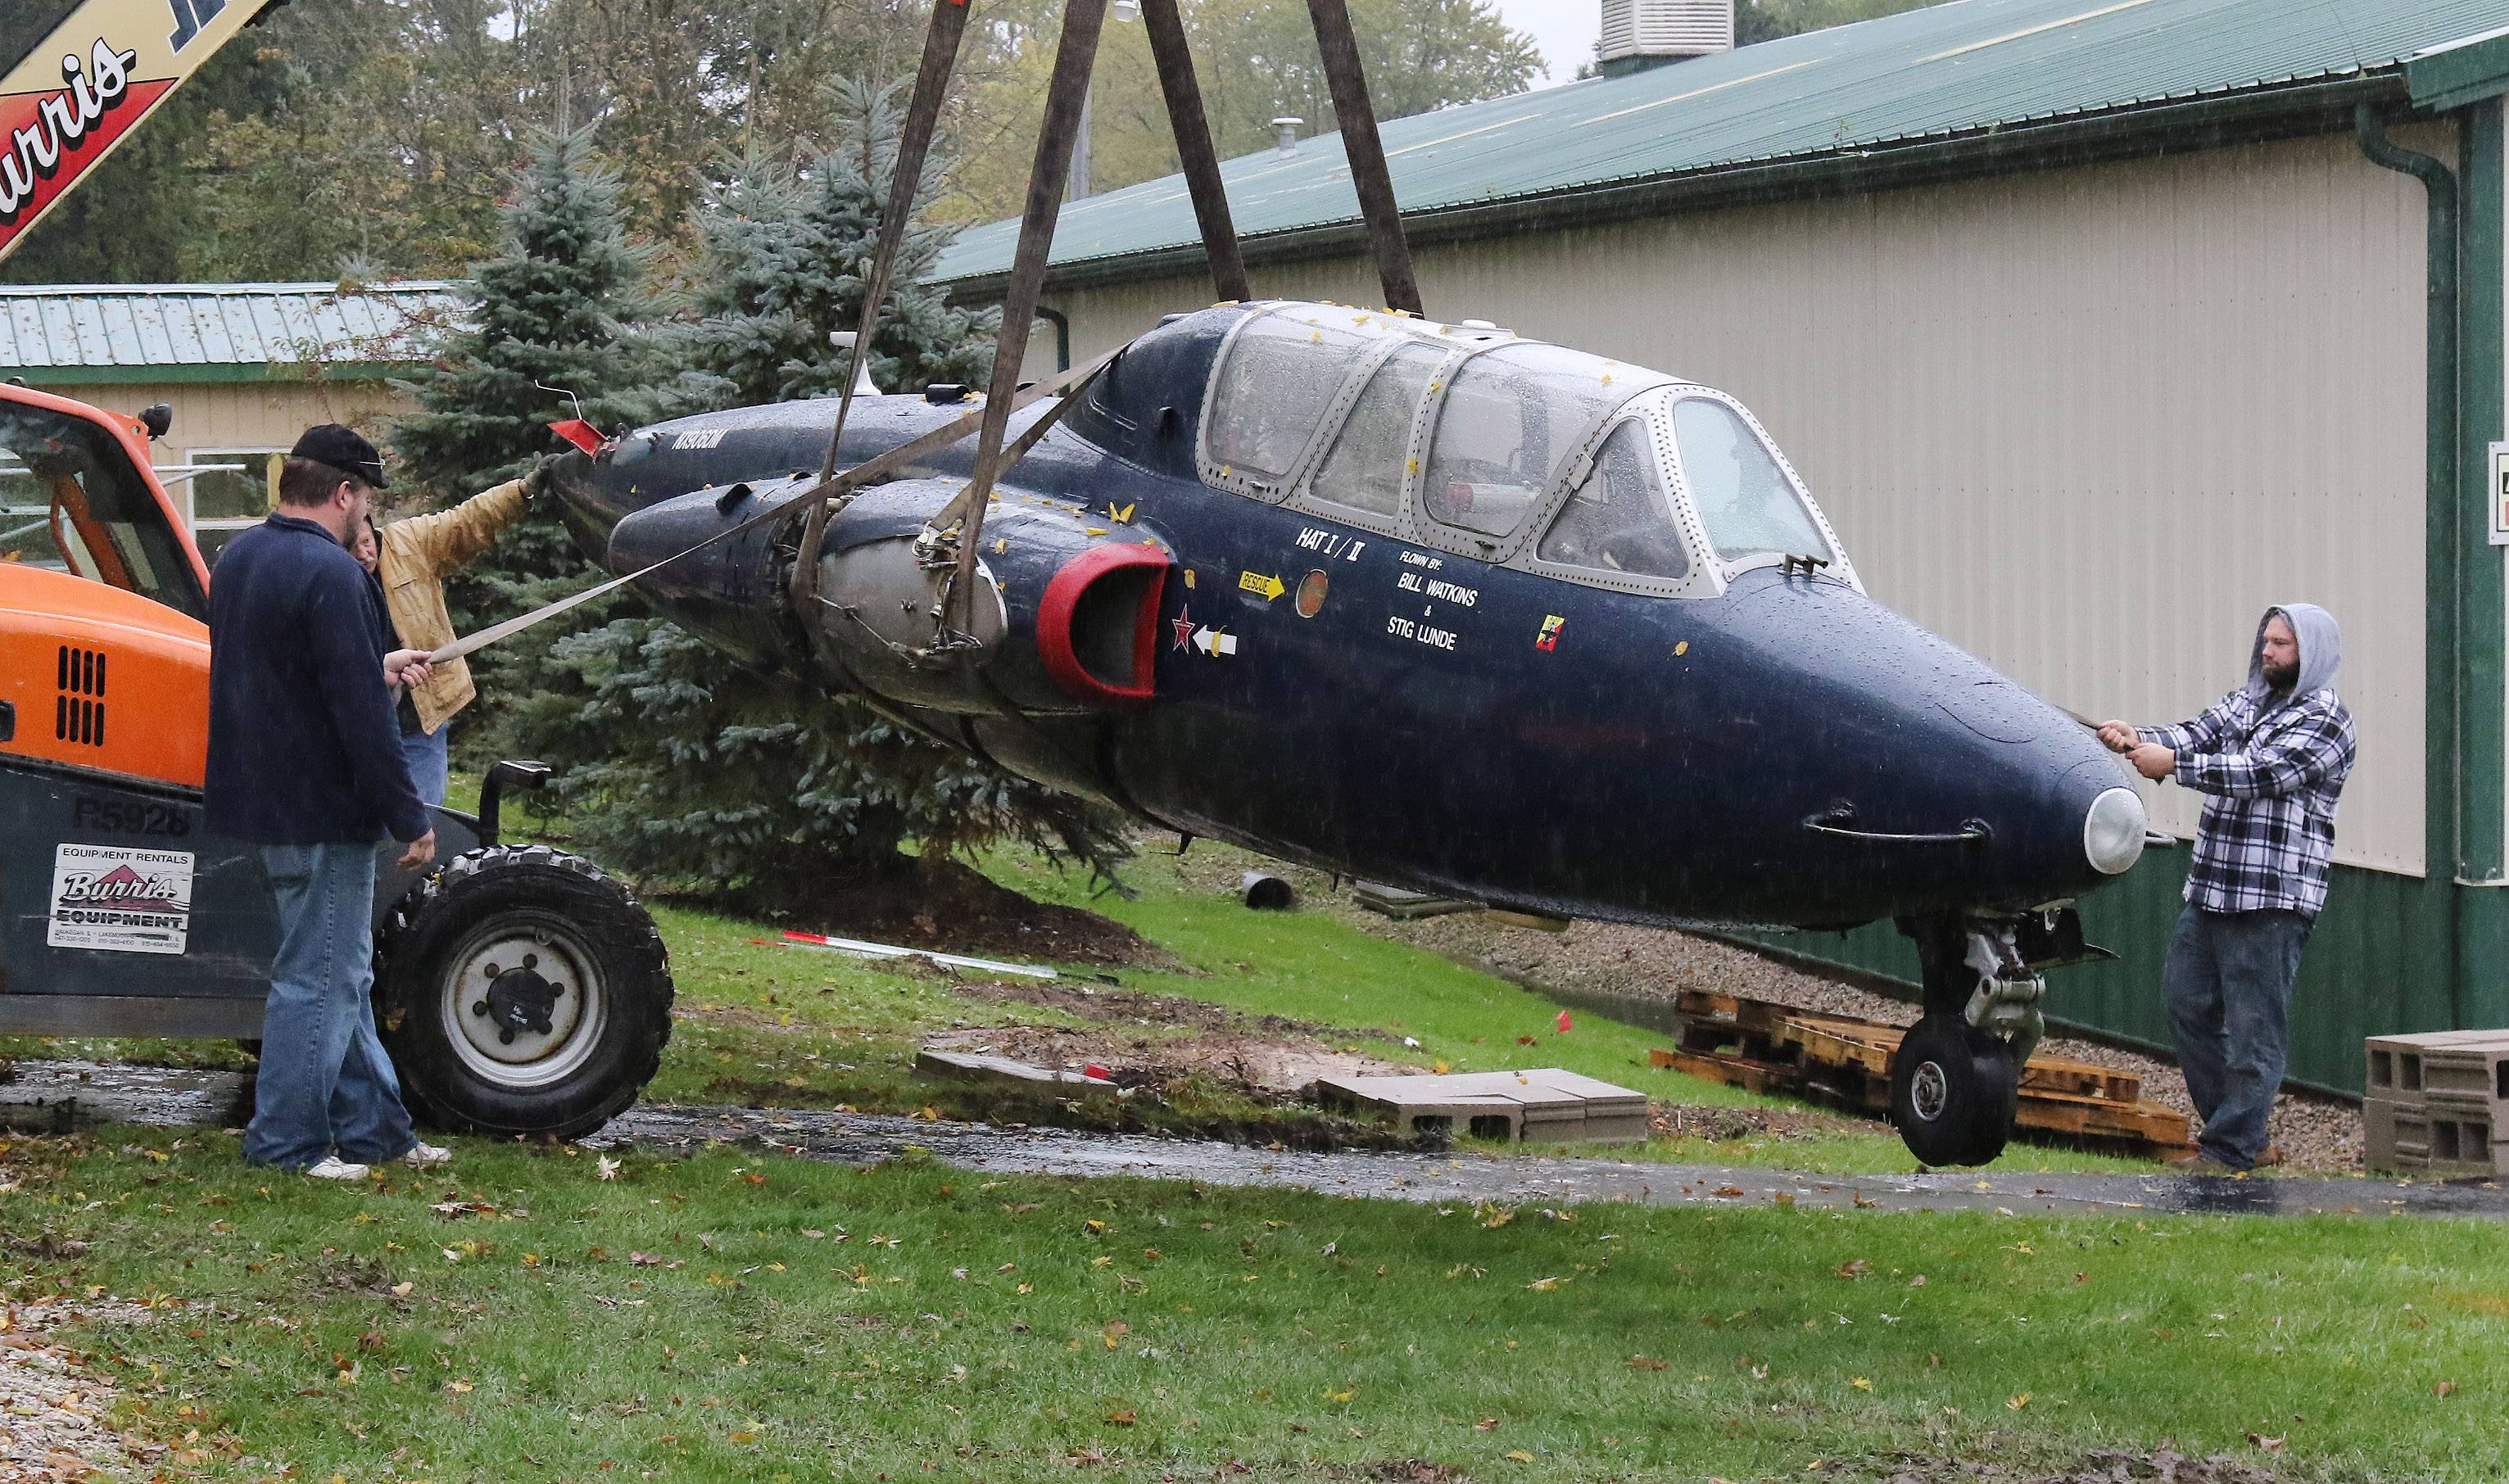 French fighter jet added to roster of Volo Auto Museum attractions